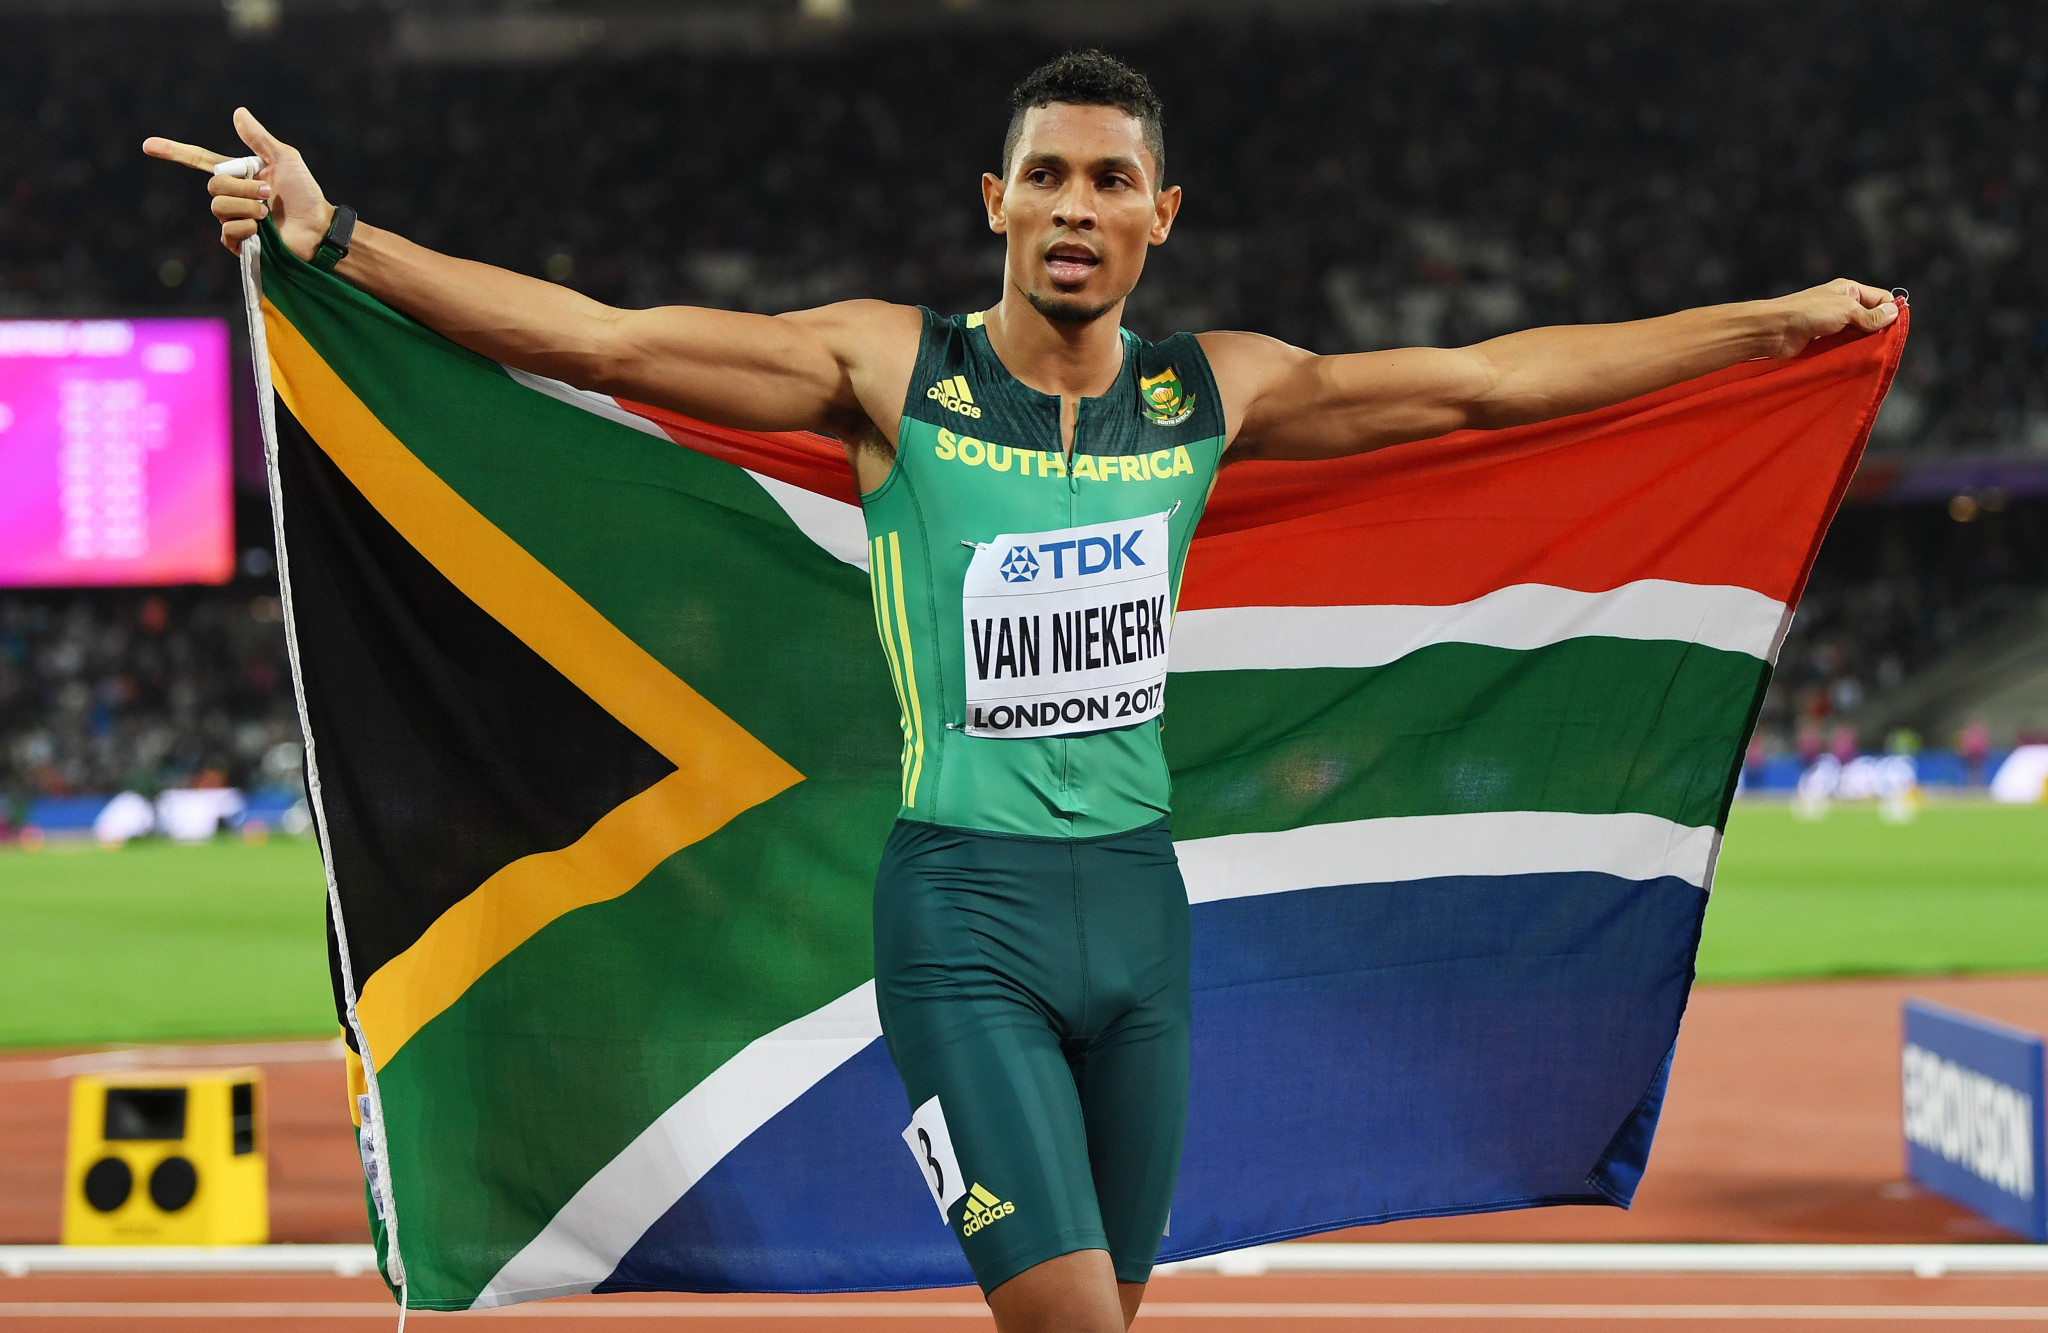 Confirmation van Niekerk wants to compete at Gold Coast 2018 boost for ticket sales